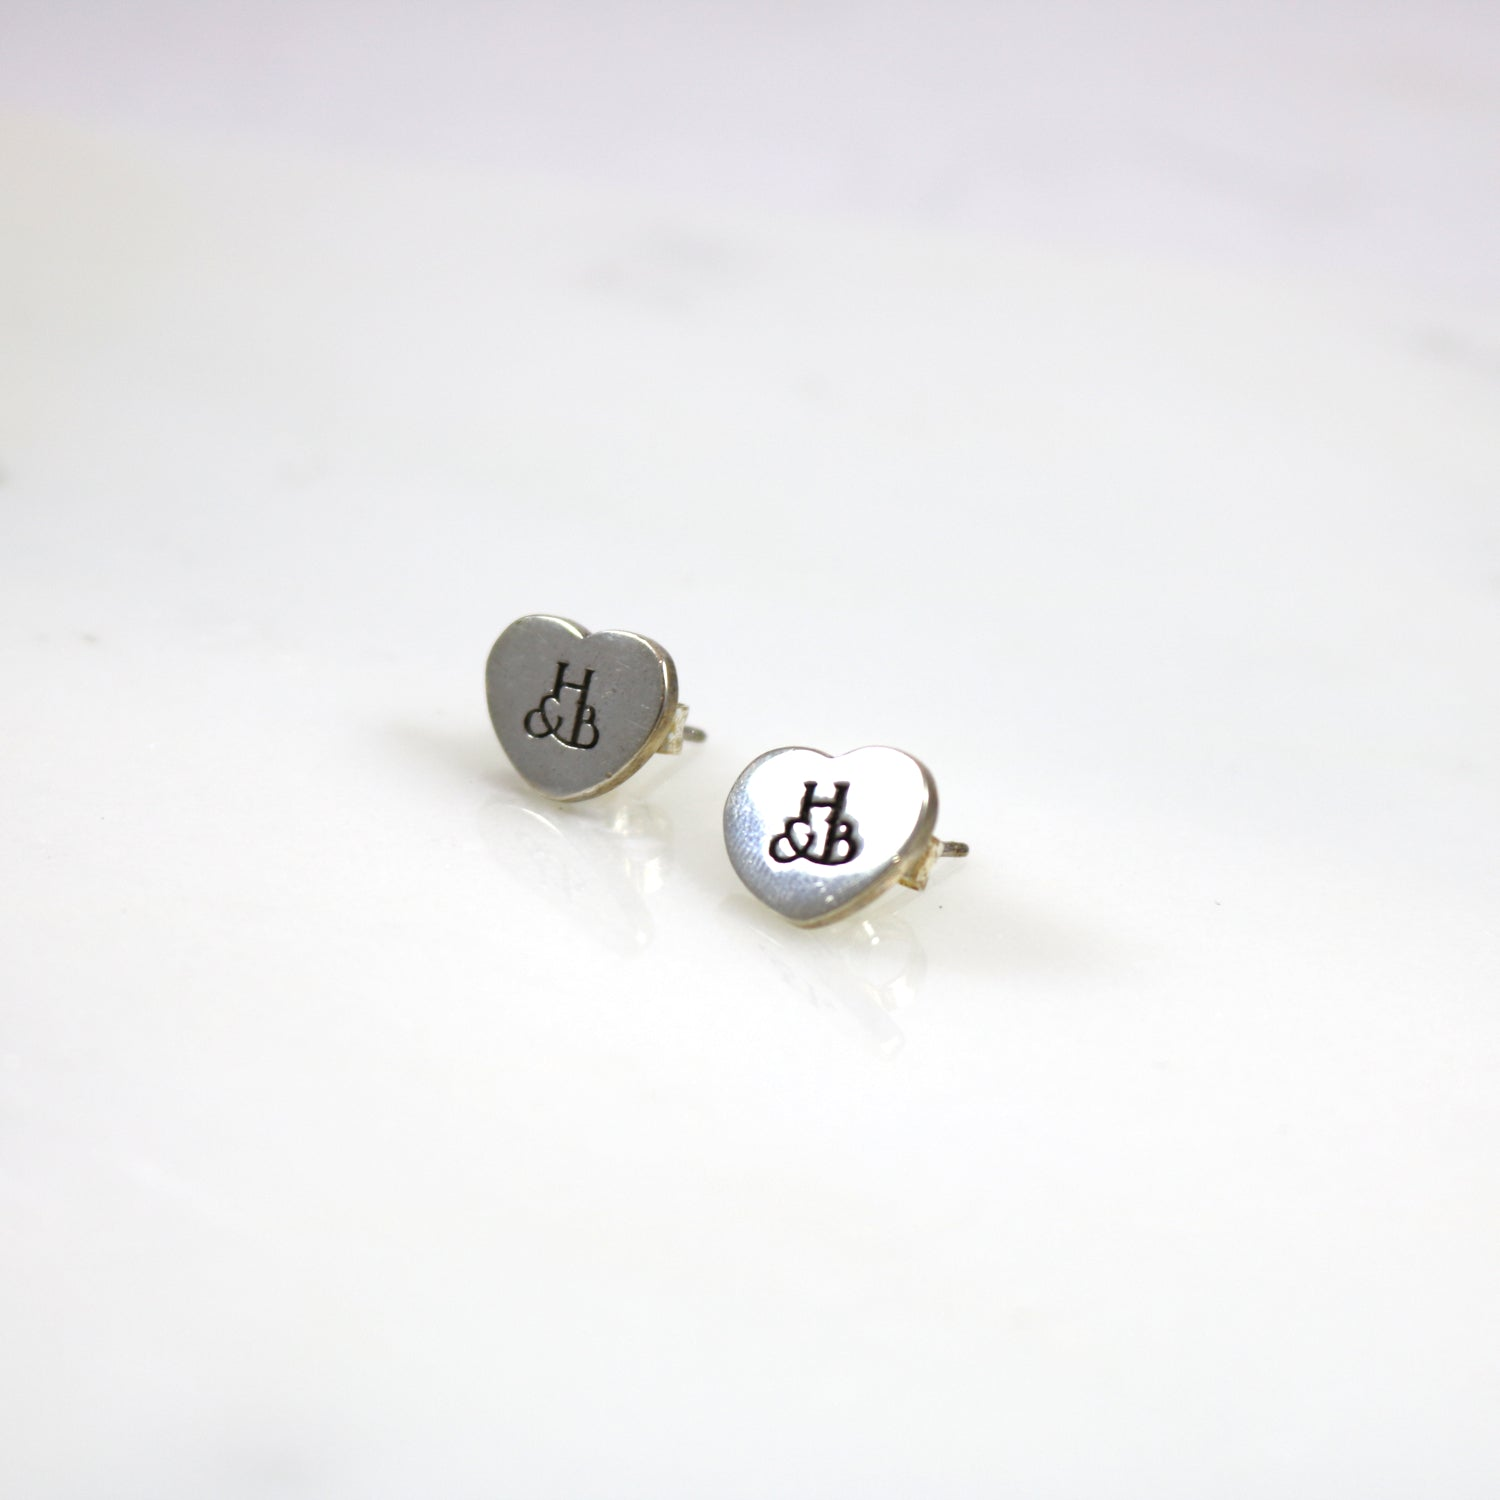 Original Heart Stud Earrings